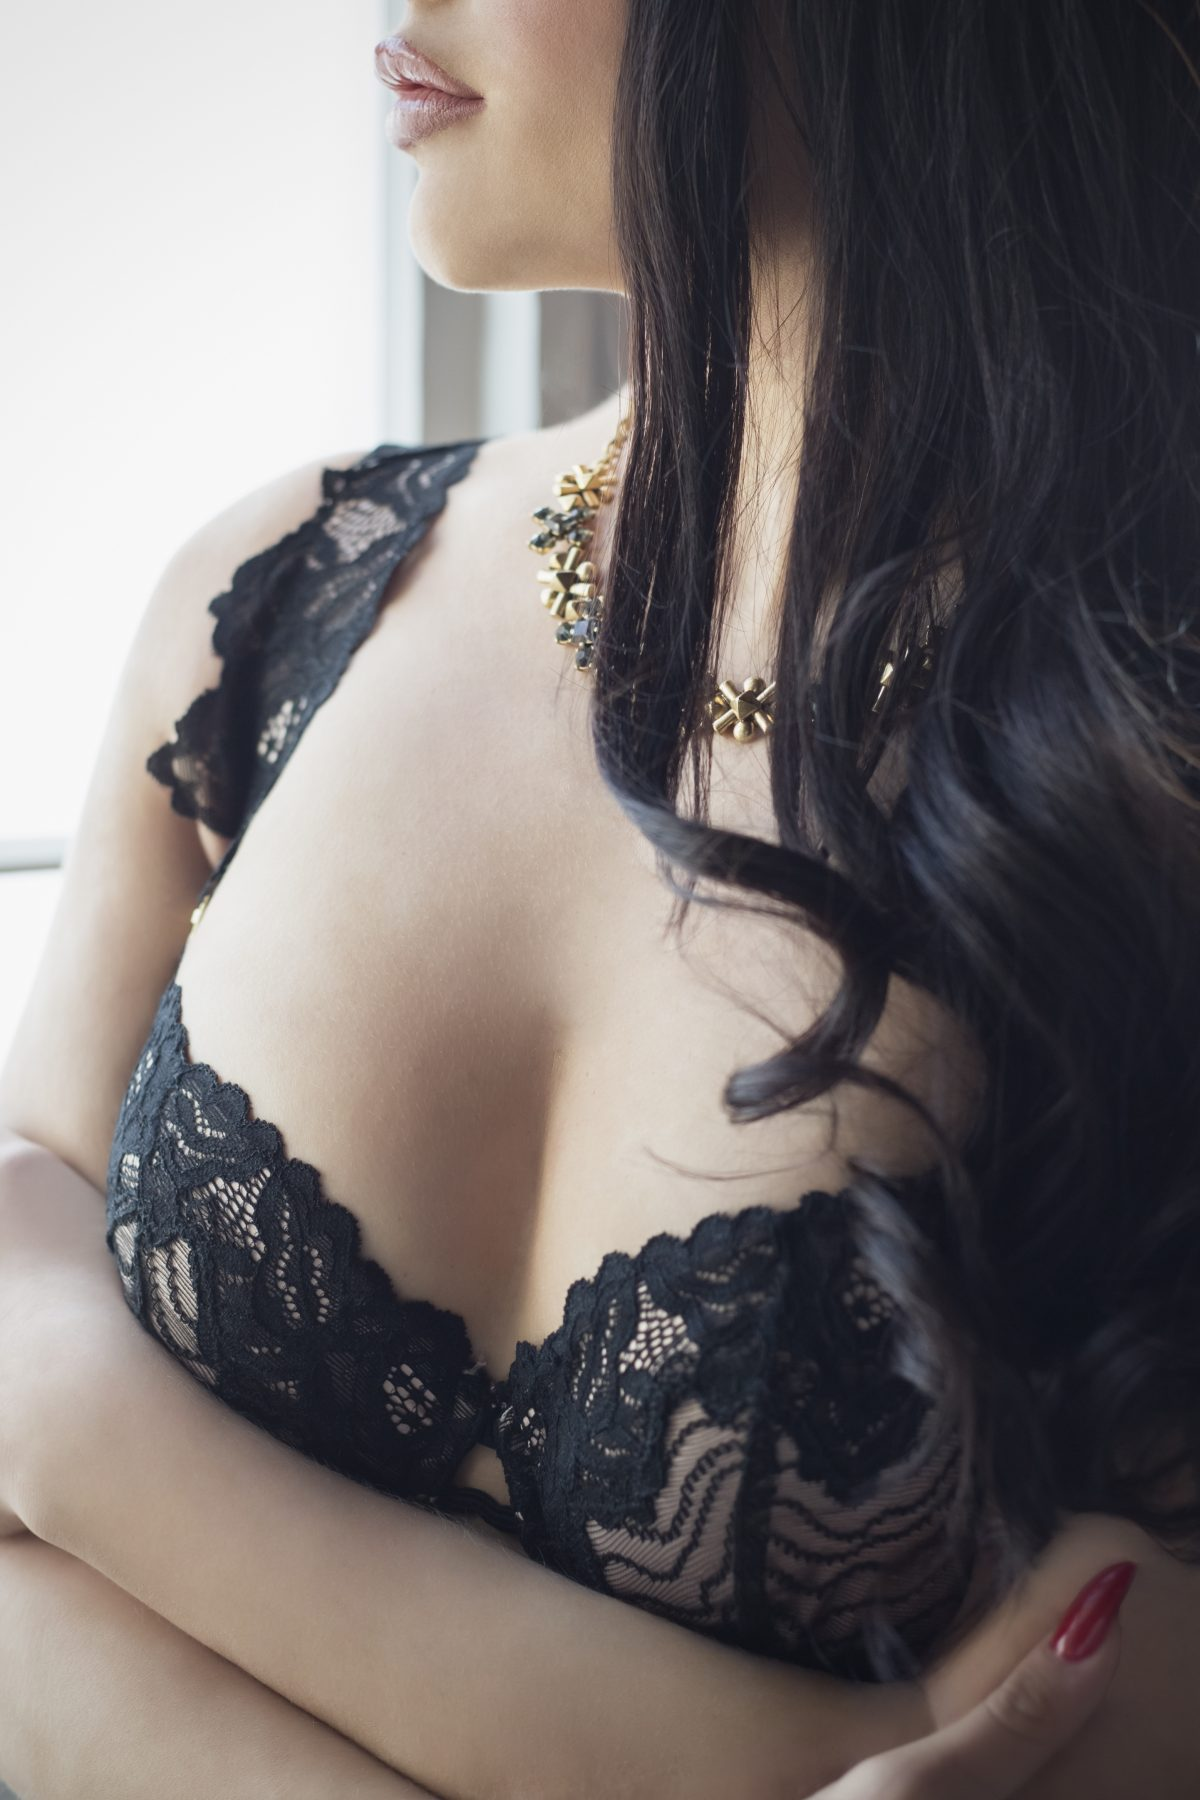 Toronto escorts companion upscale Bianca Interests Duo Couple-friendly Disability-friendly Age Young Figure Curvy Breasts Natural Hair Other Brunette Ethnicity European Tattoos Large